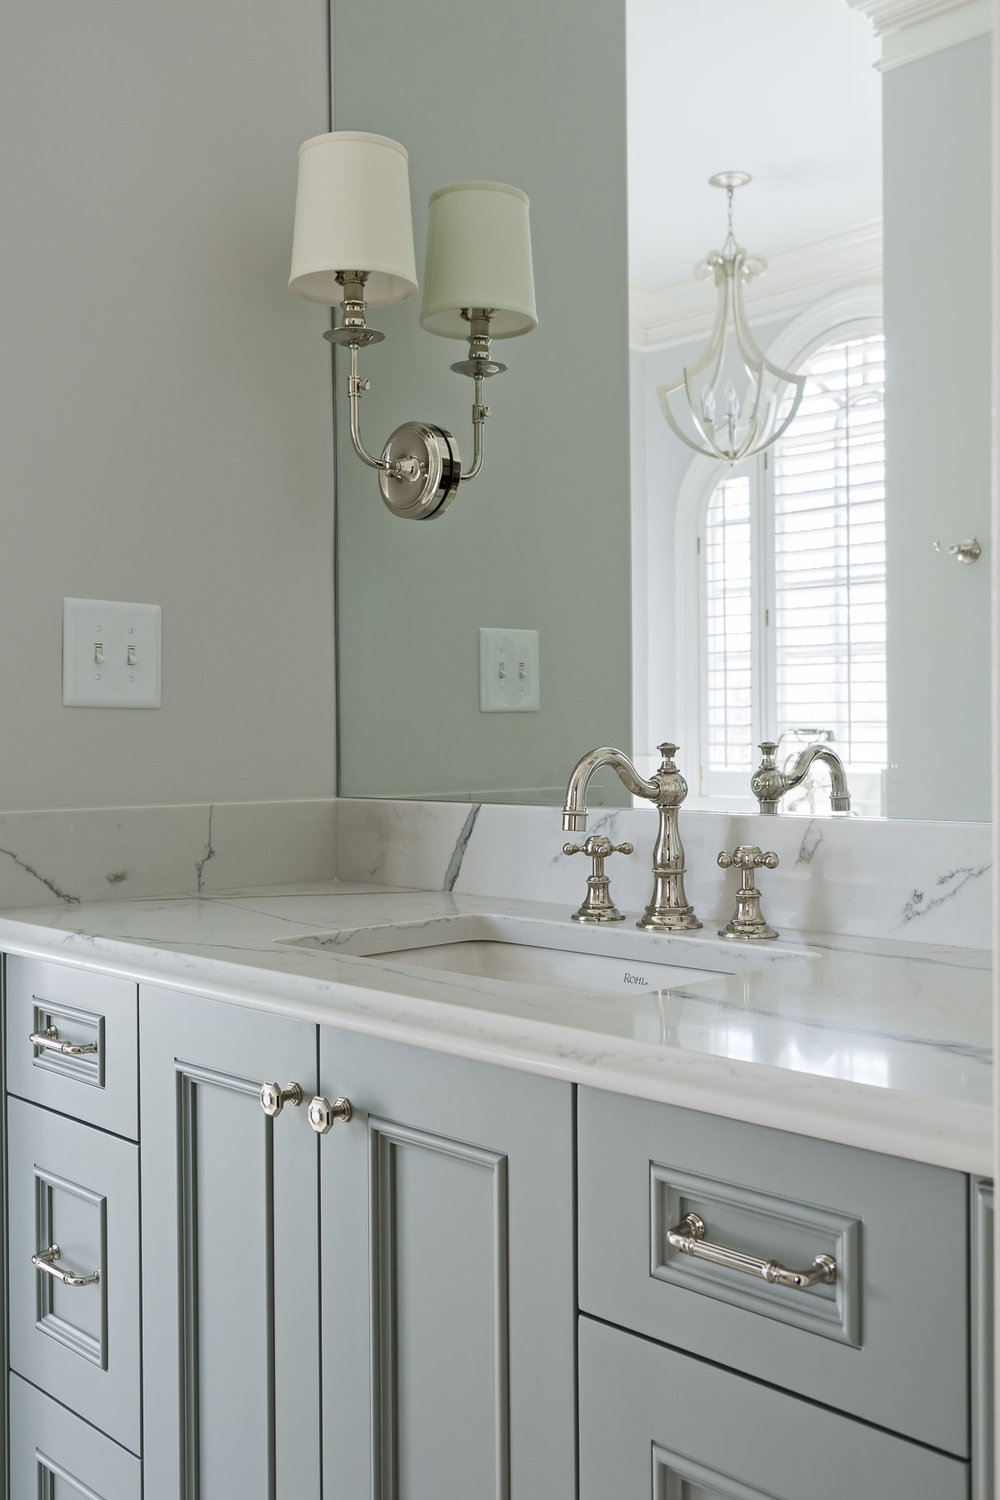 Charlotte_Advertising_Photographer-bathrooms-11.jpg